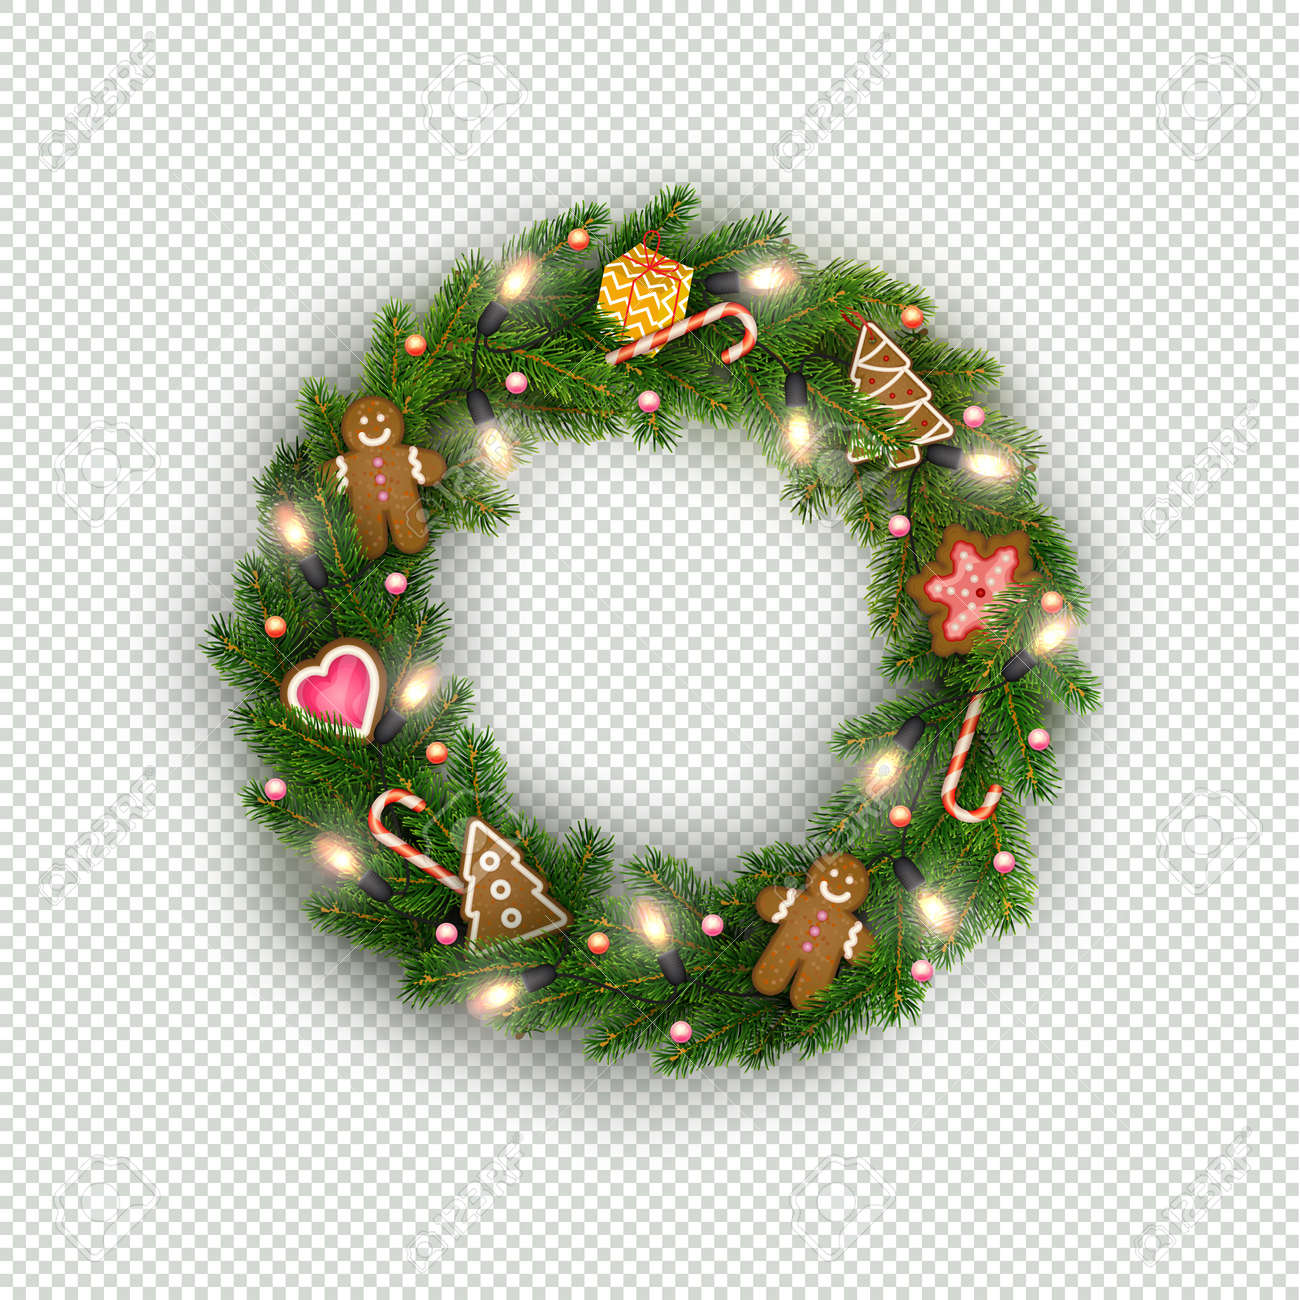 Christmas Wreath Of Realistic Christmas Tree Branches Light